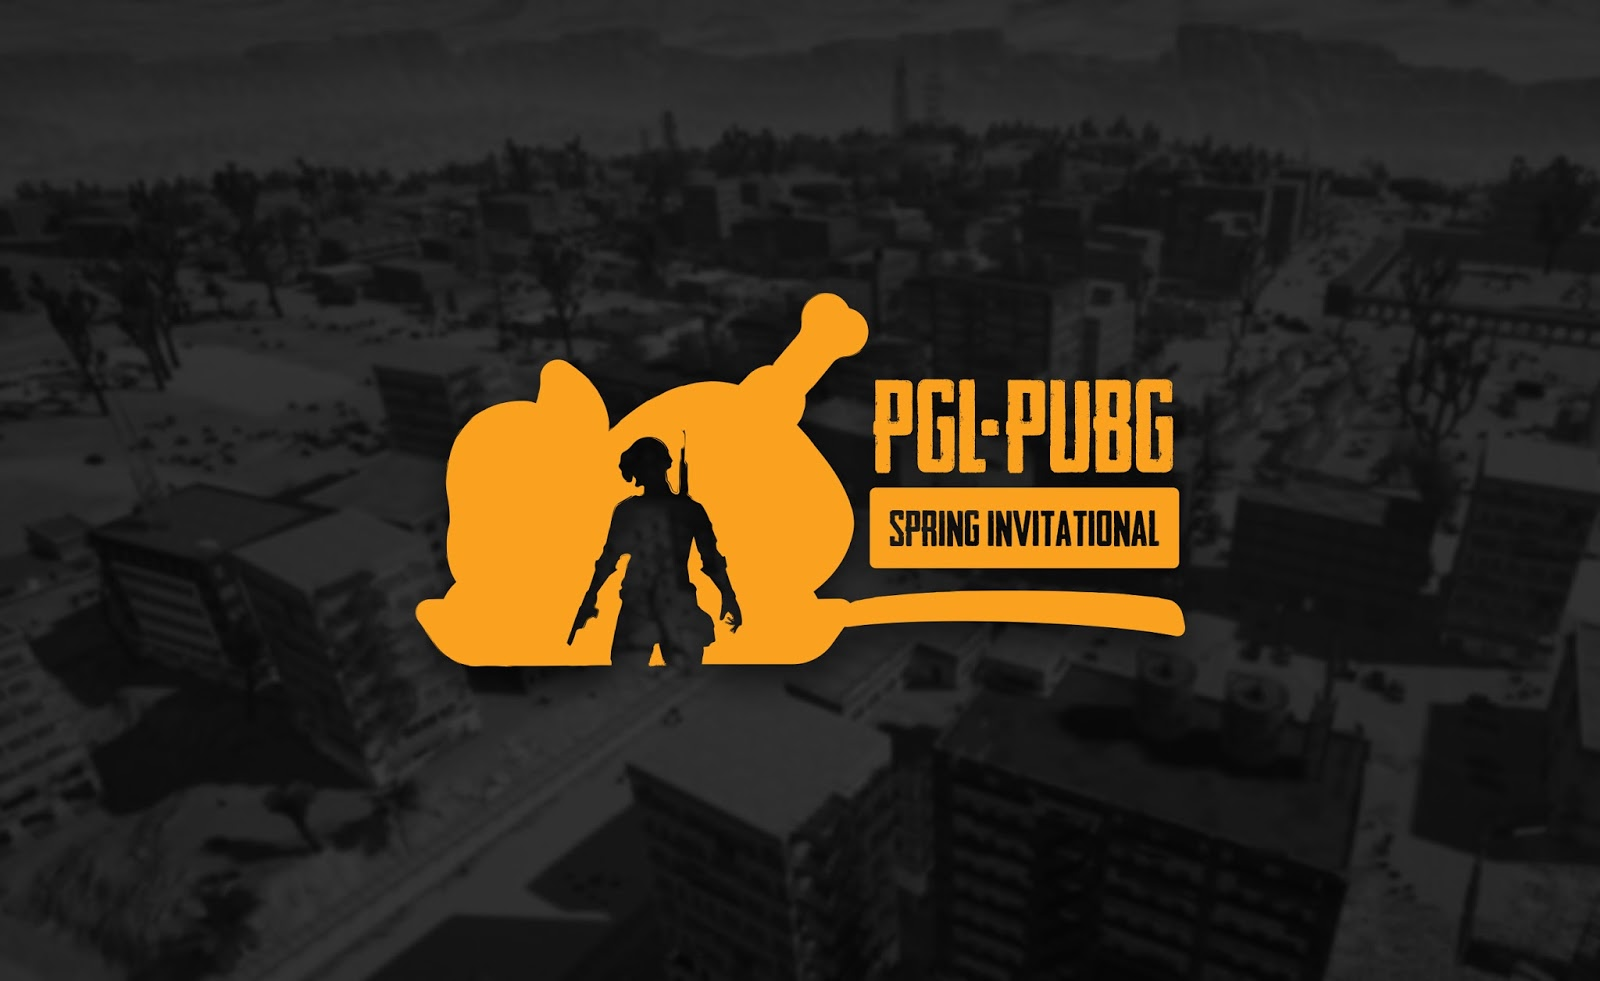 Pubg Hd Logo: Announcing The PGL PUBG Spring Invitational, Taking Place